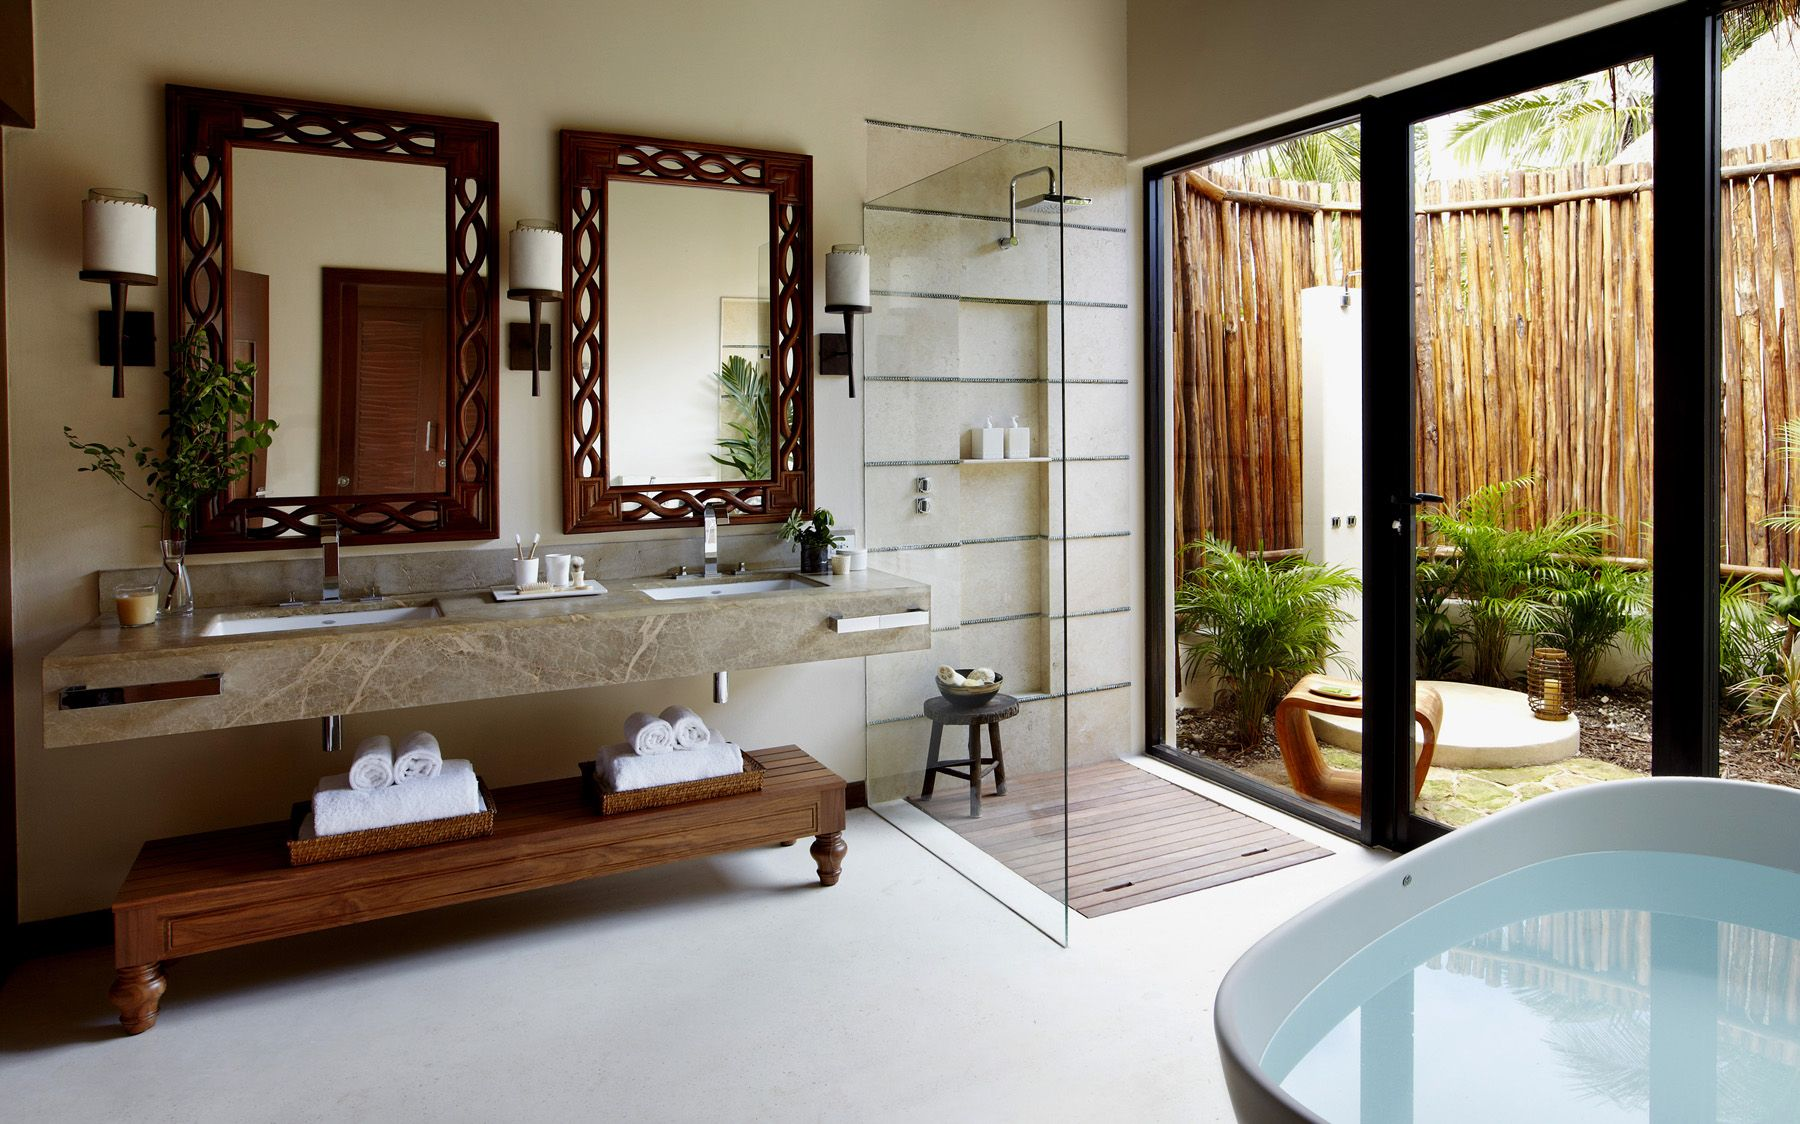 The Bathroom With Indoor Outdoor Shower Viceroy Hotel In Riveria Maya Mexico For Tampa